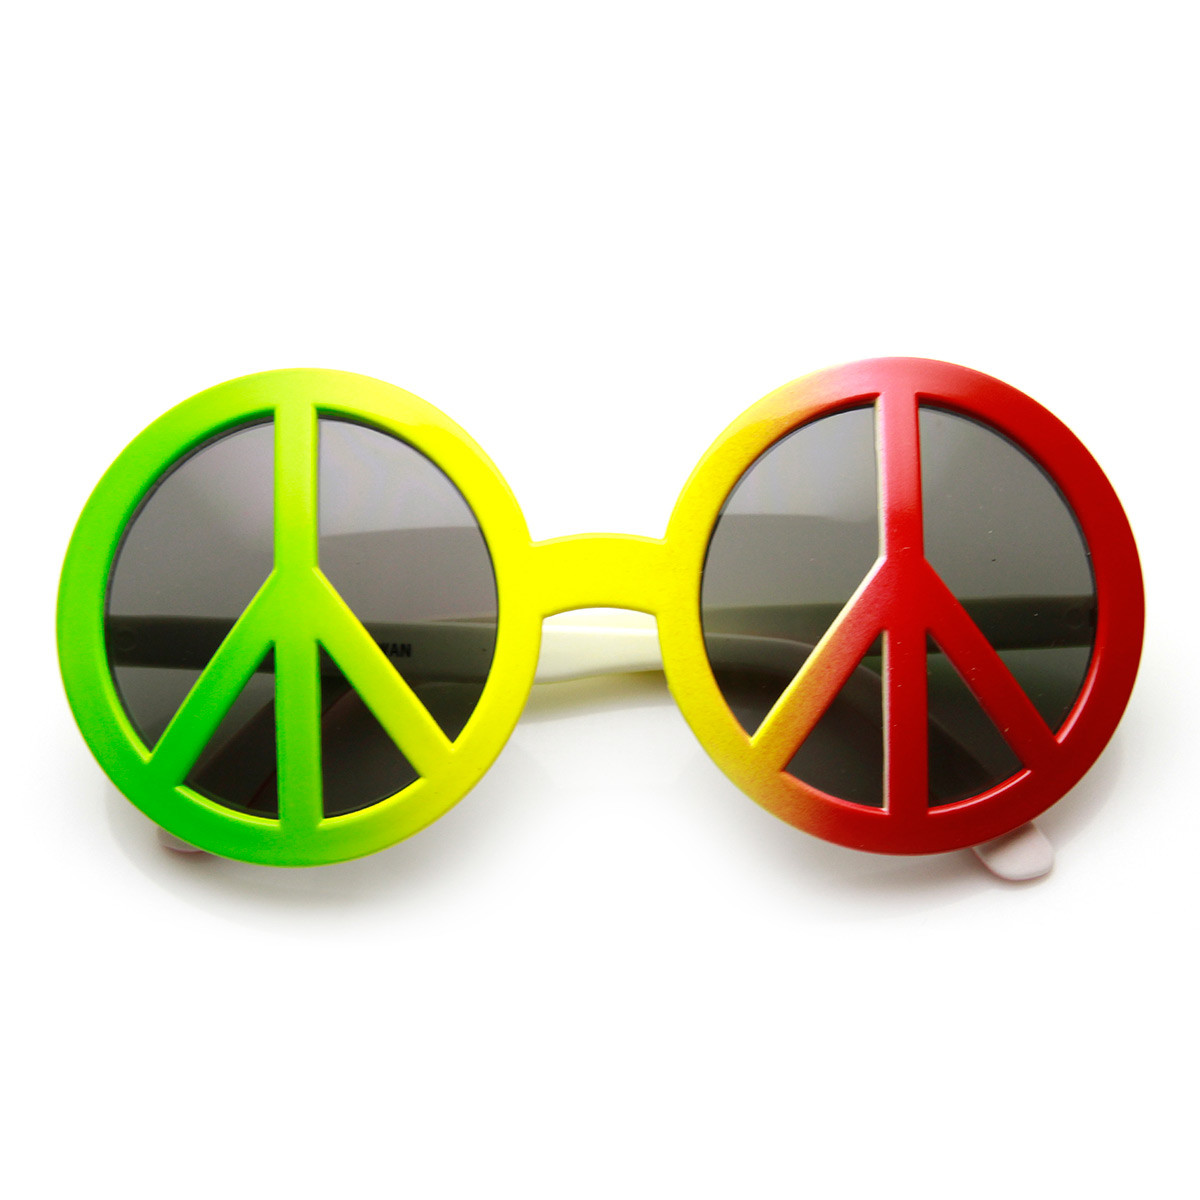 Hippie clipart hippie glass. Pencil and in color